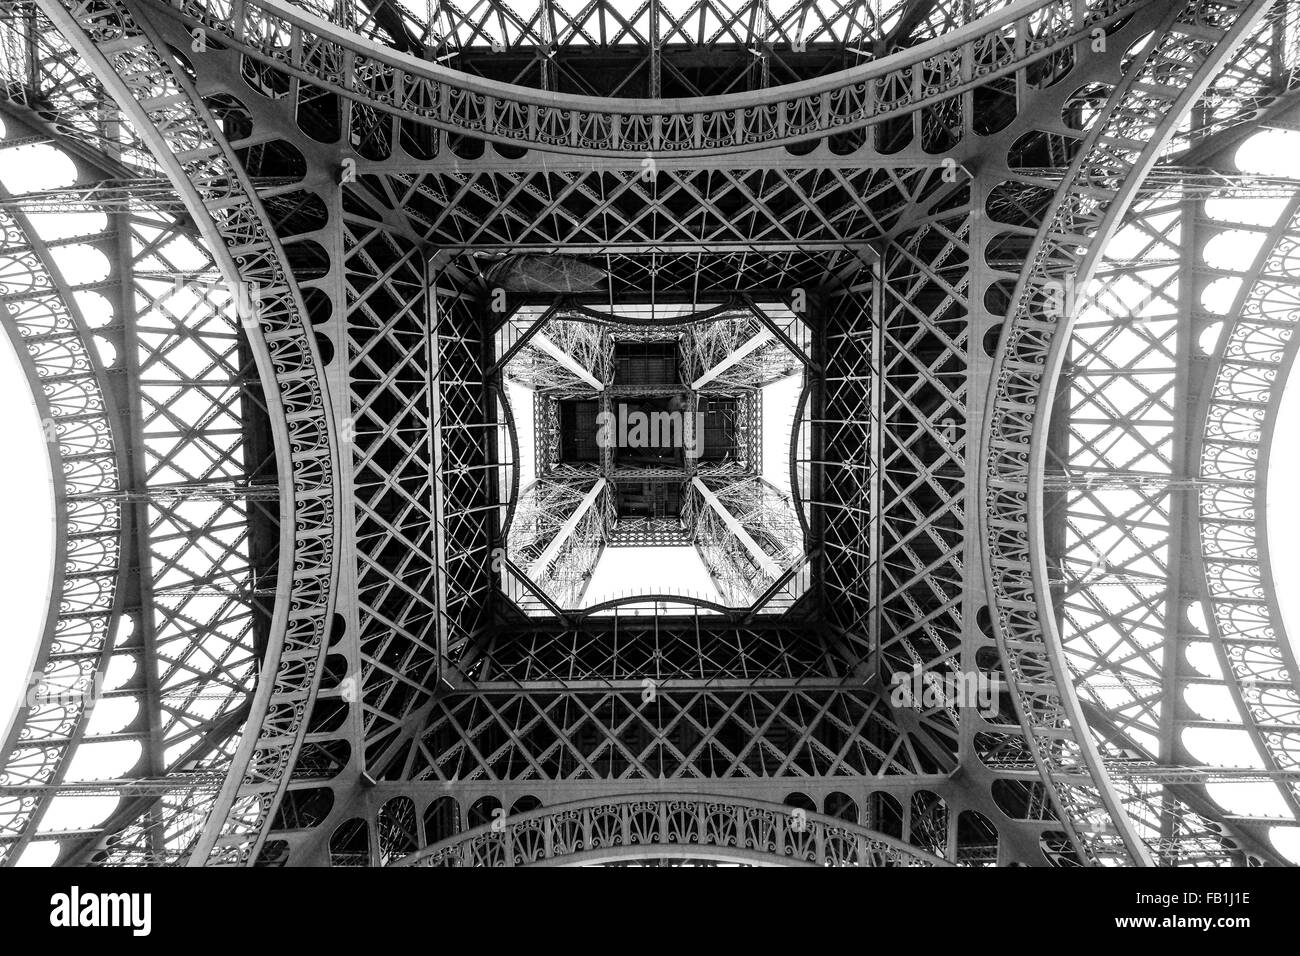 A photograph from below the bottom of the Eiffel tower in Paris France.  Black and White. - Stock Image